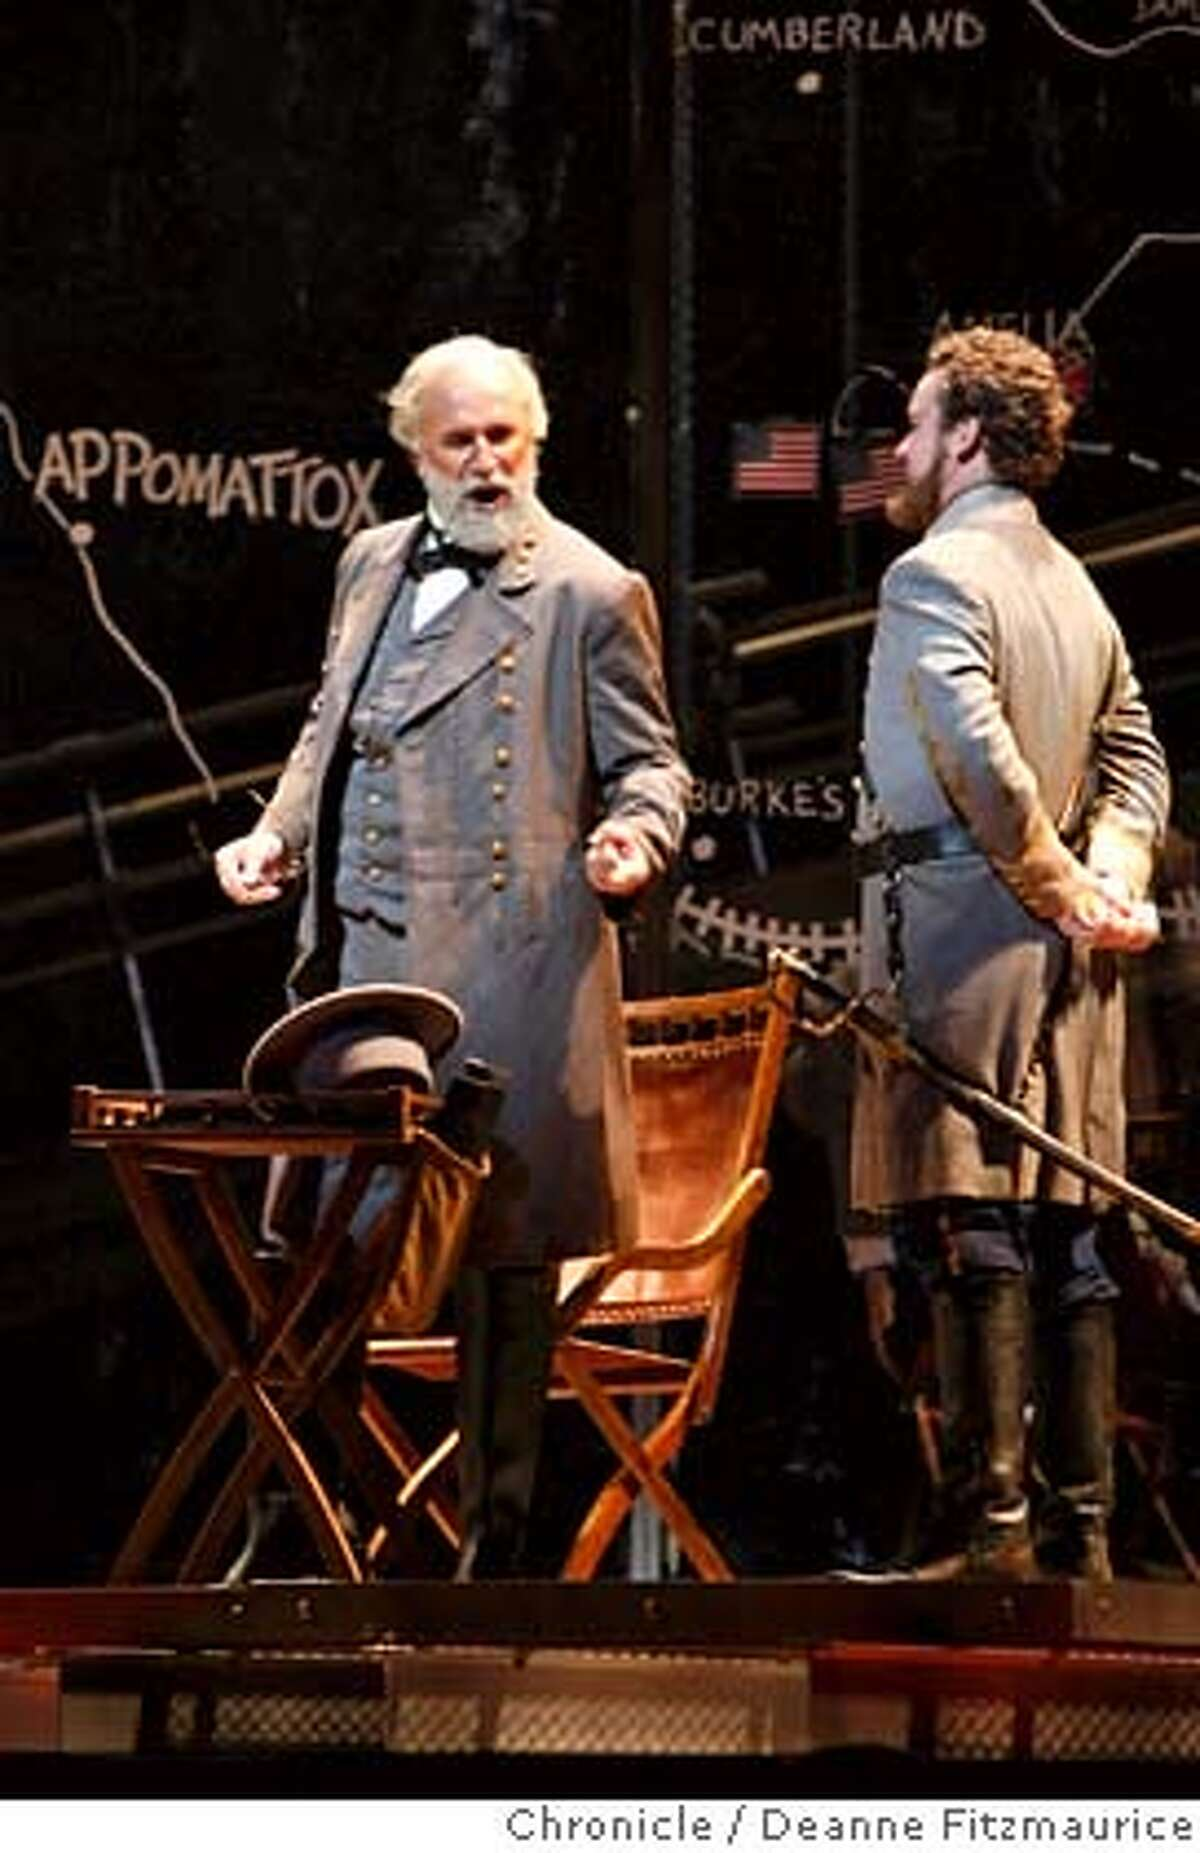 appomattox_167_df.jpg At left, Dwayne Croft plays General Robert E. Lee. San Francisco Opera performs Appomattox, Philip Glass's Civil War piece. Photographed in San Francisco on 10/2/07. Deanne Fitzmaurice / The Chronicle Mandatory credit for photographer and San Francisco Chronicle. No Sales/Magazines out.